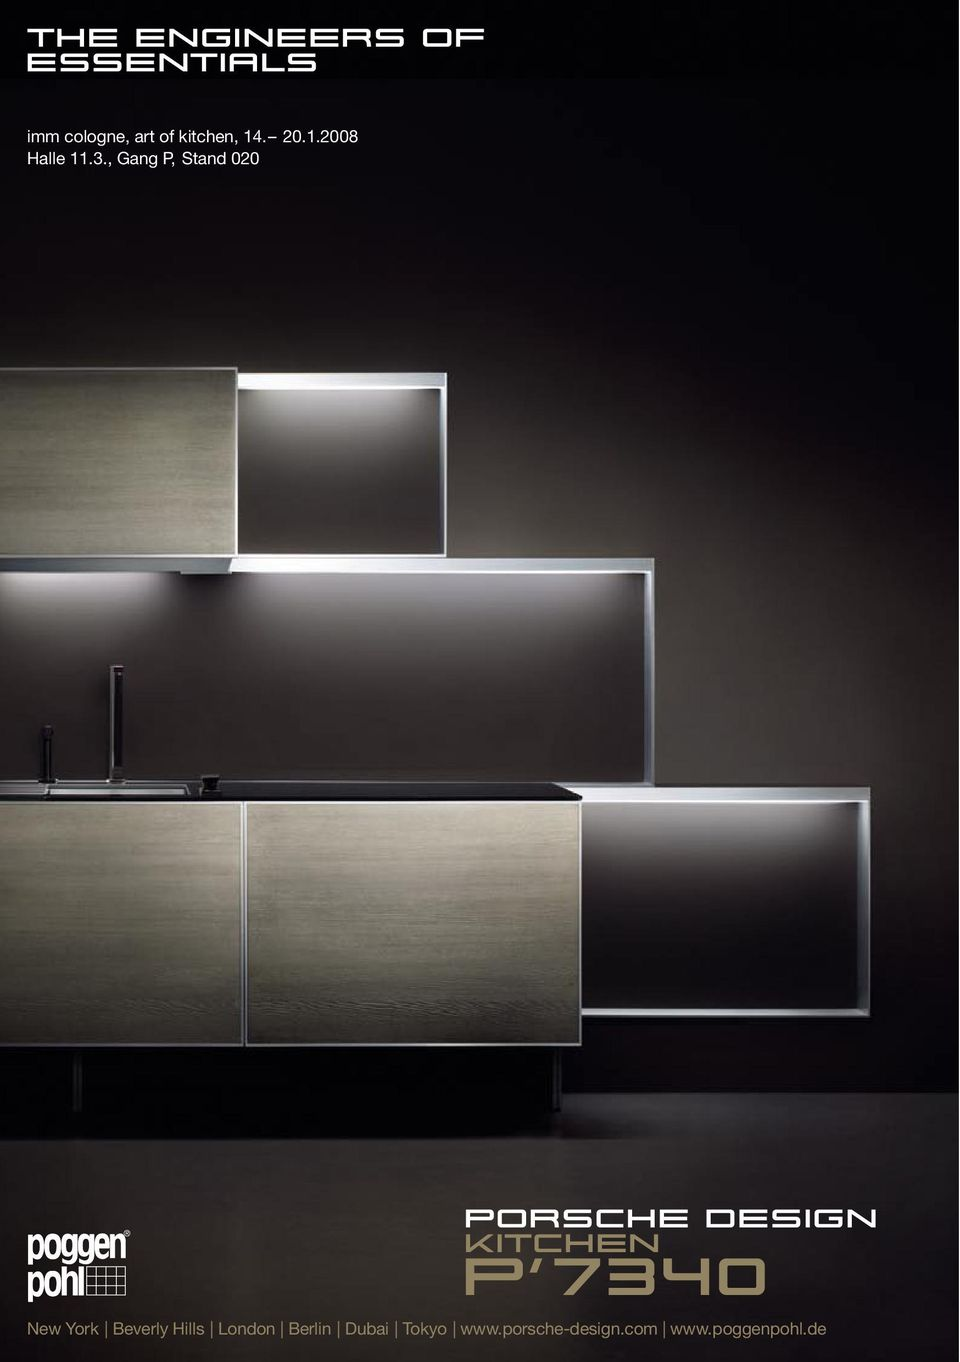 , Gang P, Stand 020 Porsche Design kitchen ß7340 New